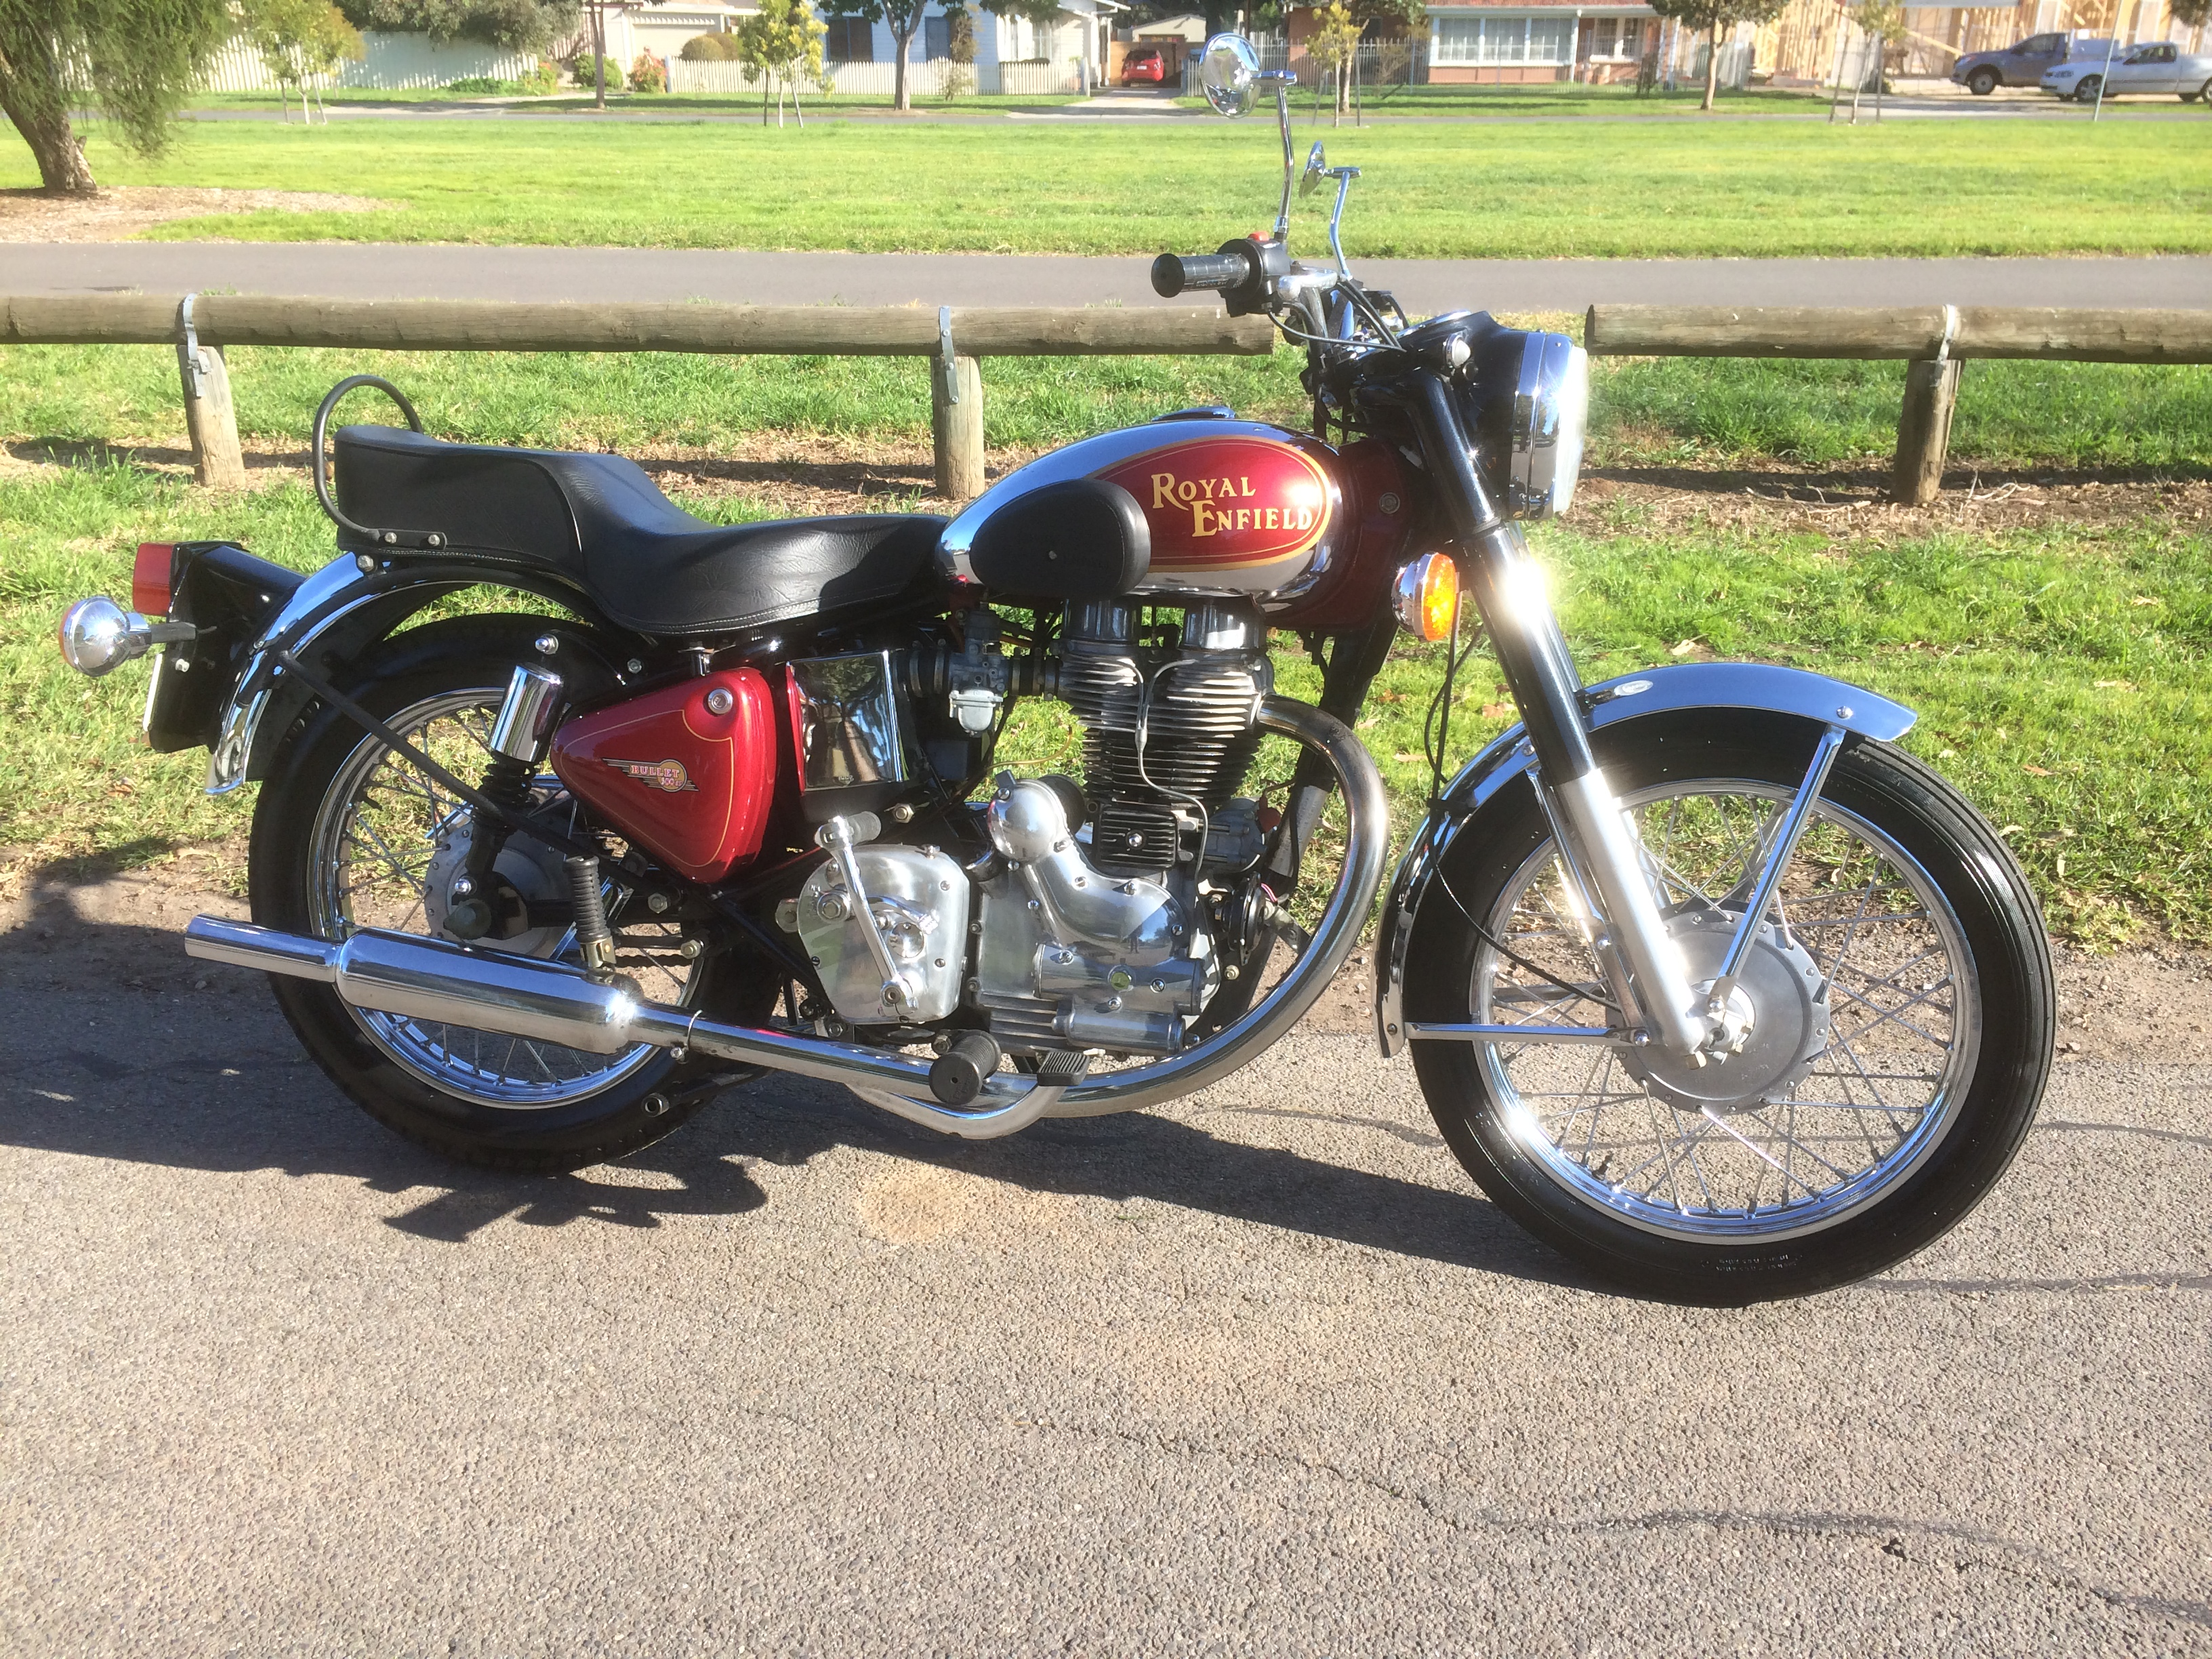 Royal Enfield Bullet C5 Classic EFI 2010 images #127534